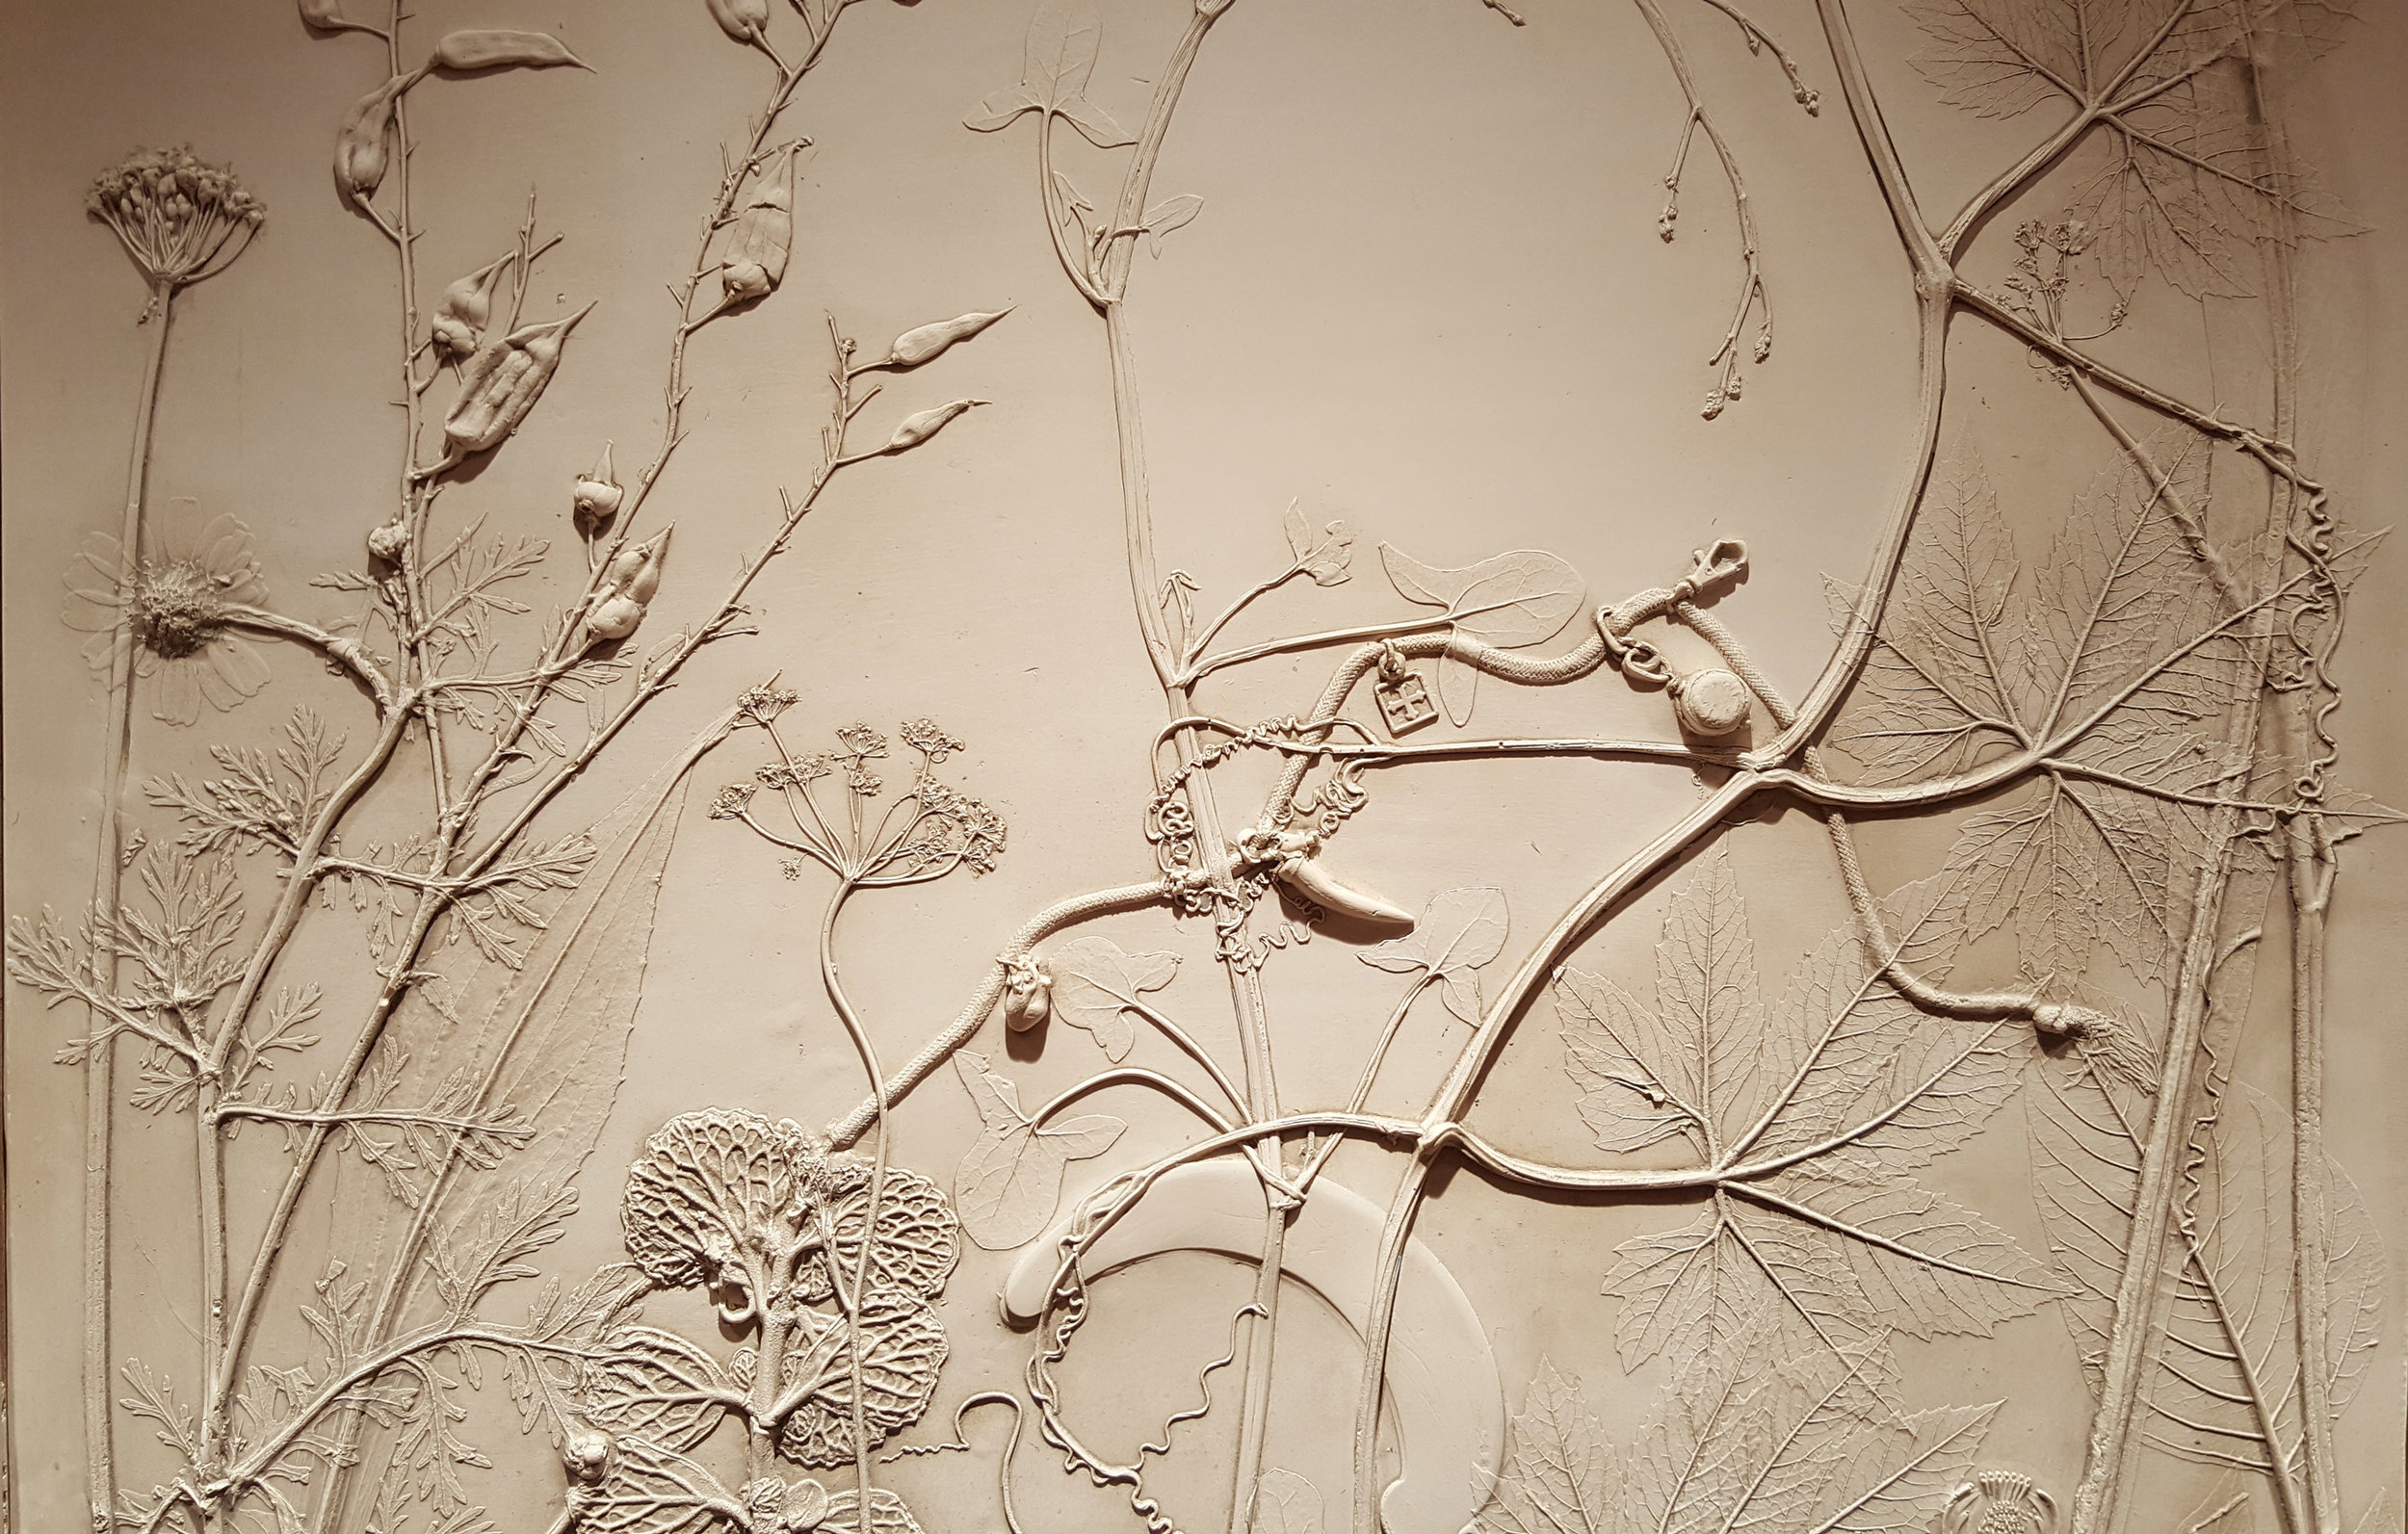 These White Walls gathered treasured objects from the client to be cast within the mural, hidden amongst the weeds